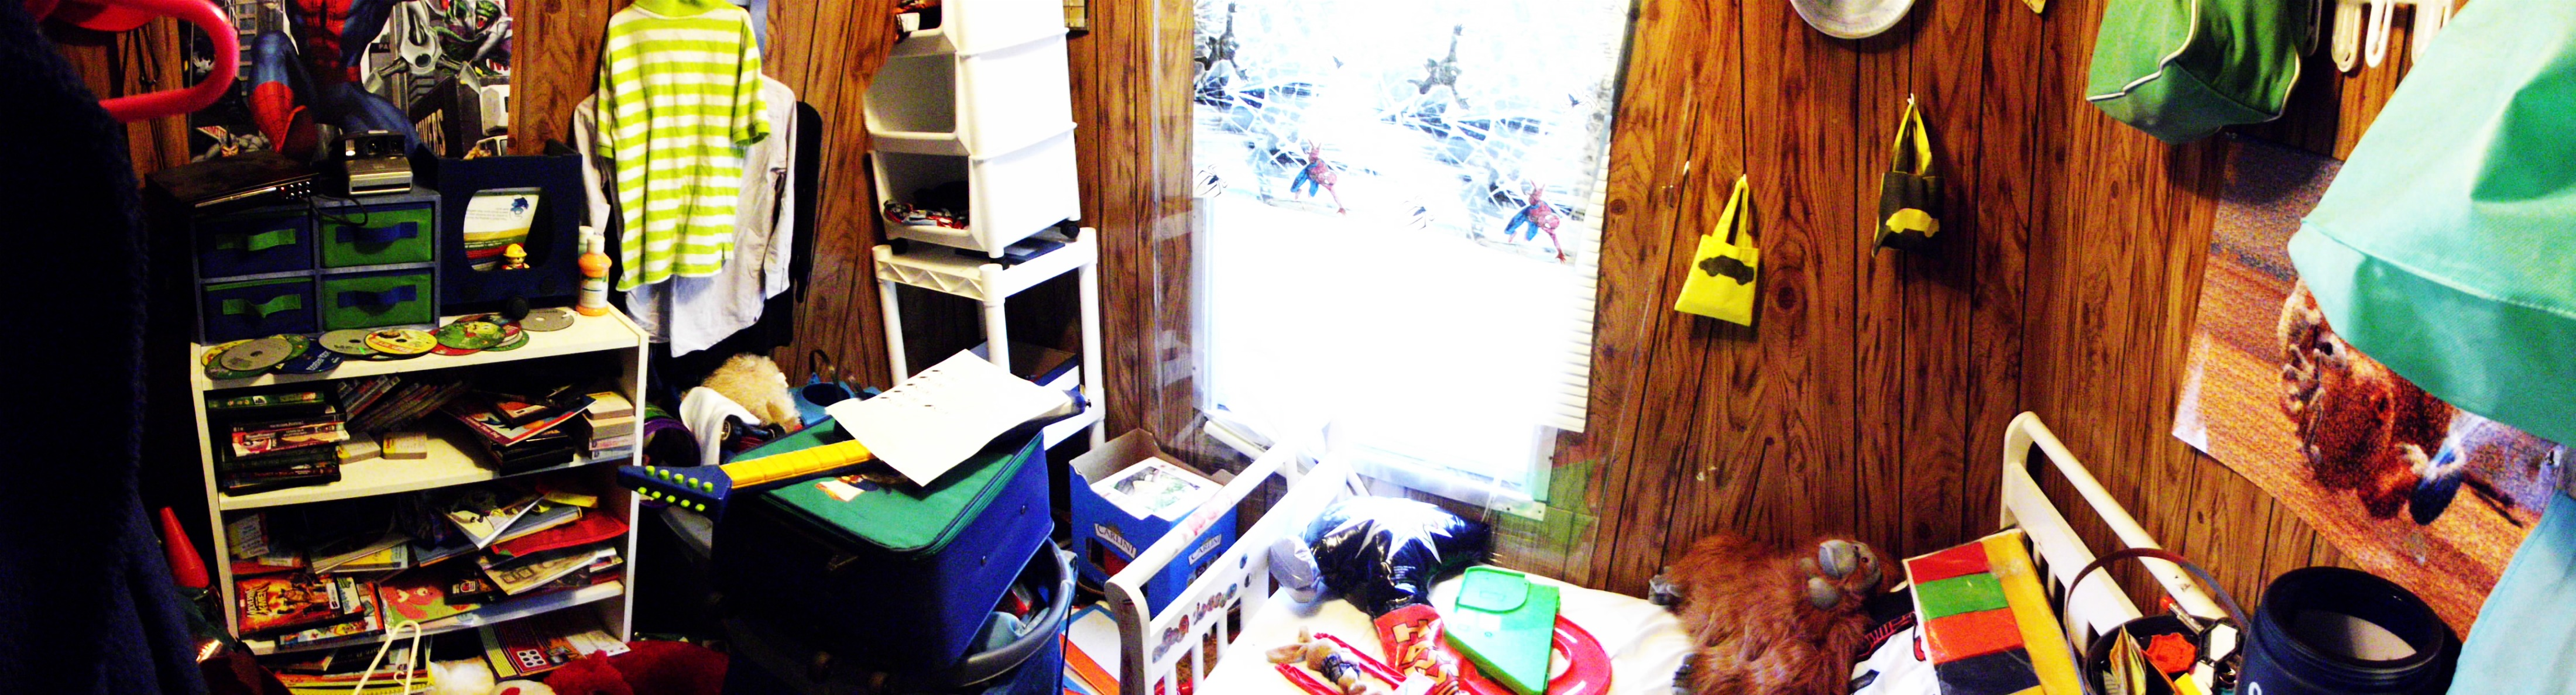 Picture of 6 Year Old's Room